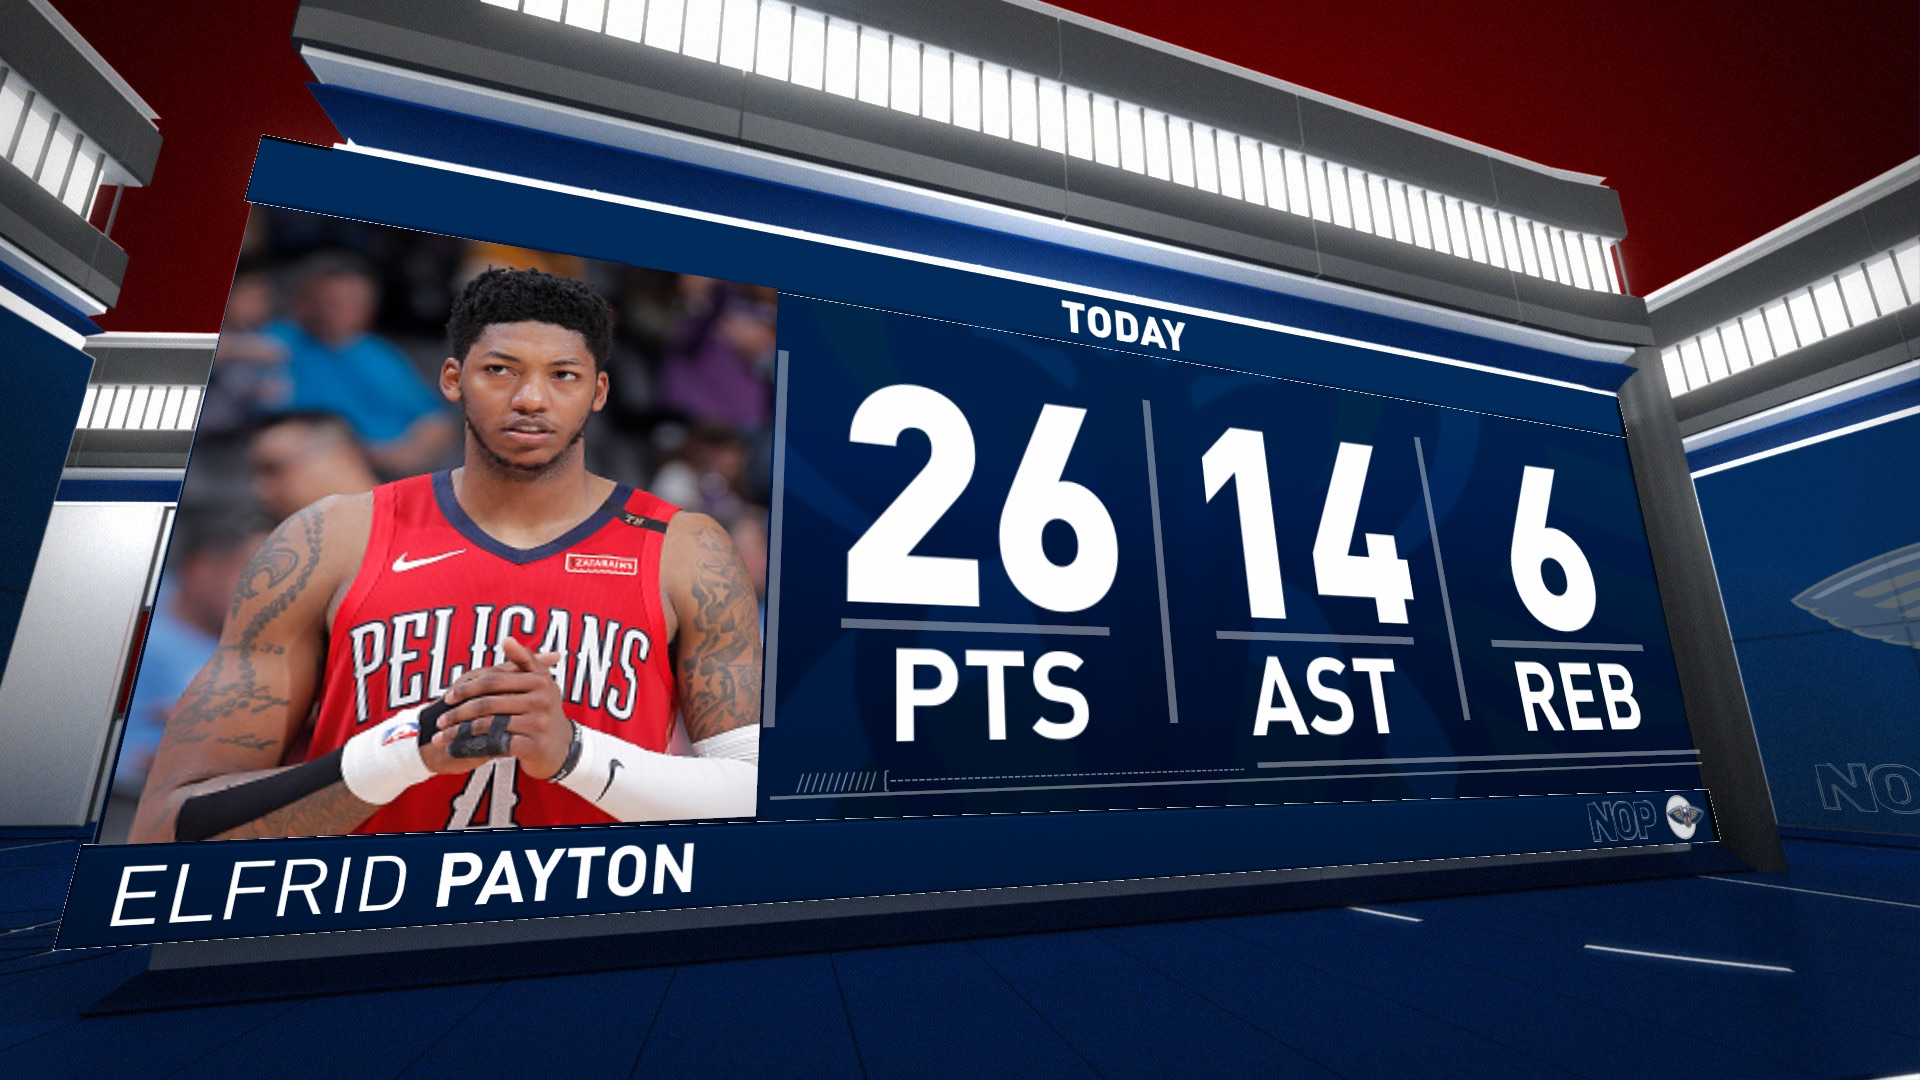 Elfrid Payton with a strong 26 points l Pelicans at Kings Highlights